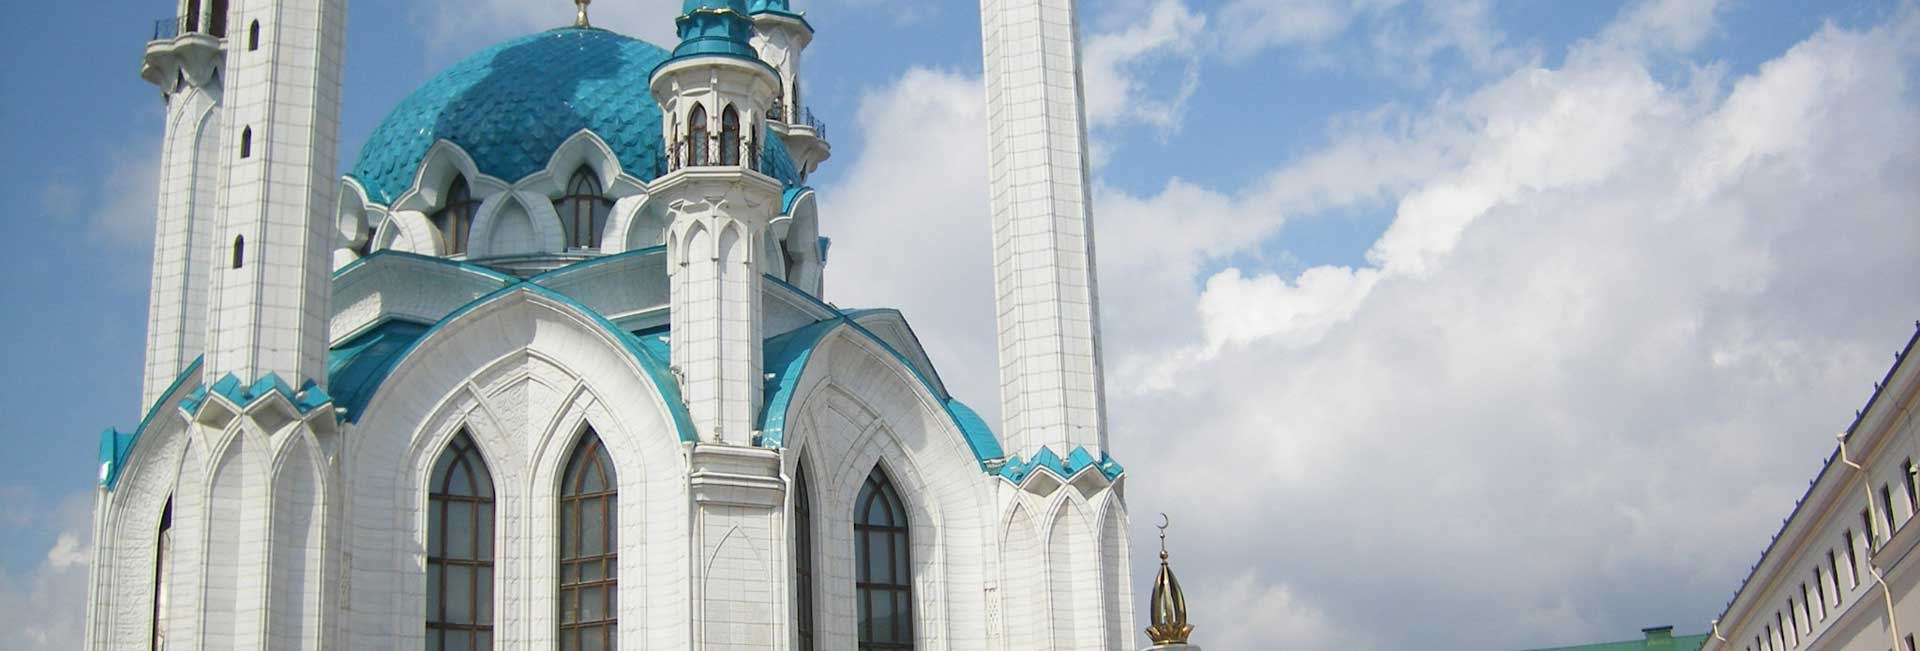 Kul Sharif Mosque in Kazan, Russia's largest mosque. Photo credit: Douglas Grimes